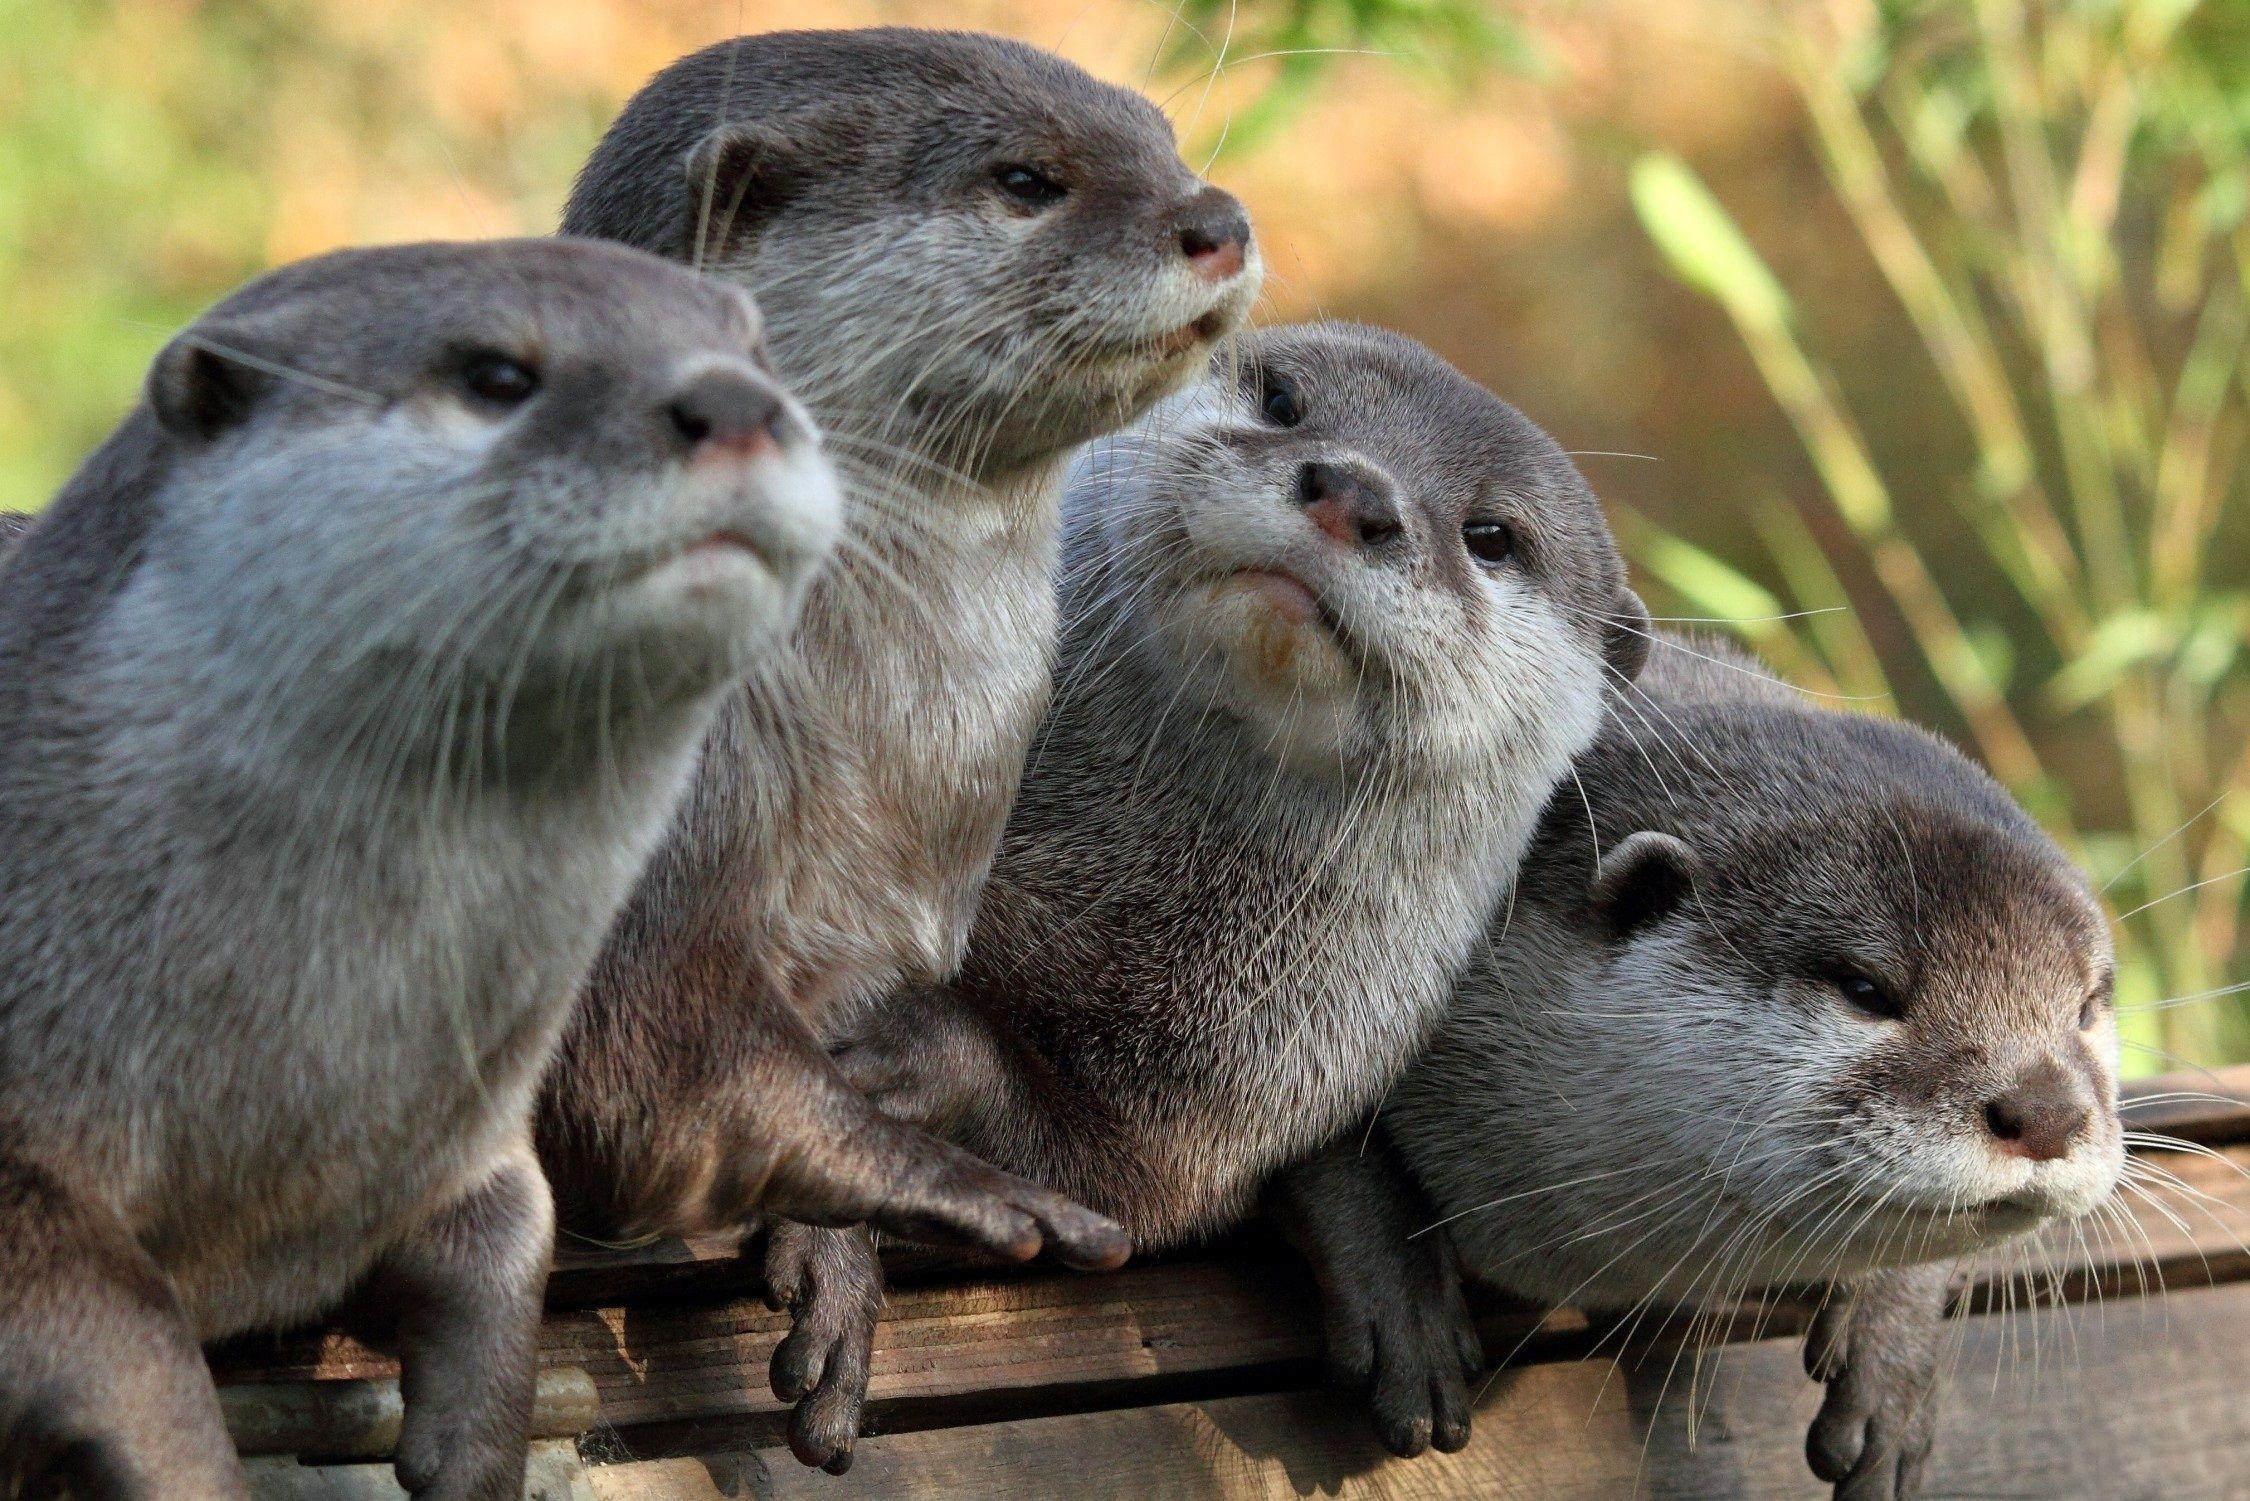 Cute Otter Wallpapers Wallpaper Cave